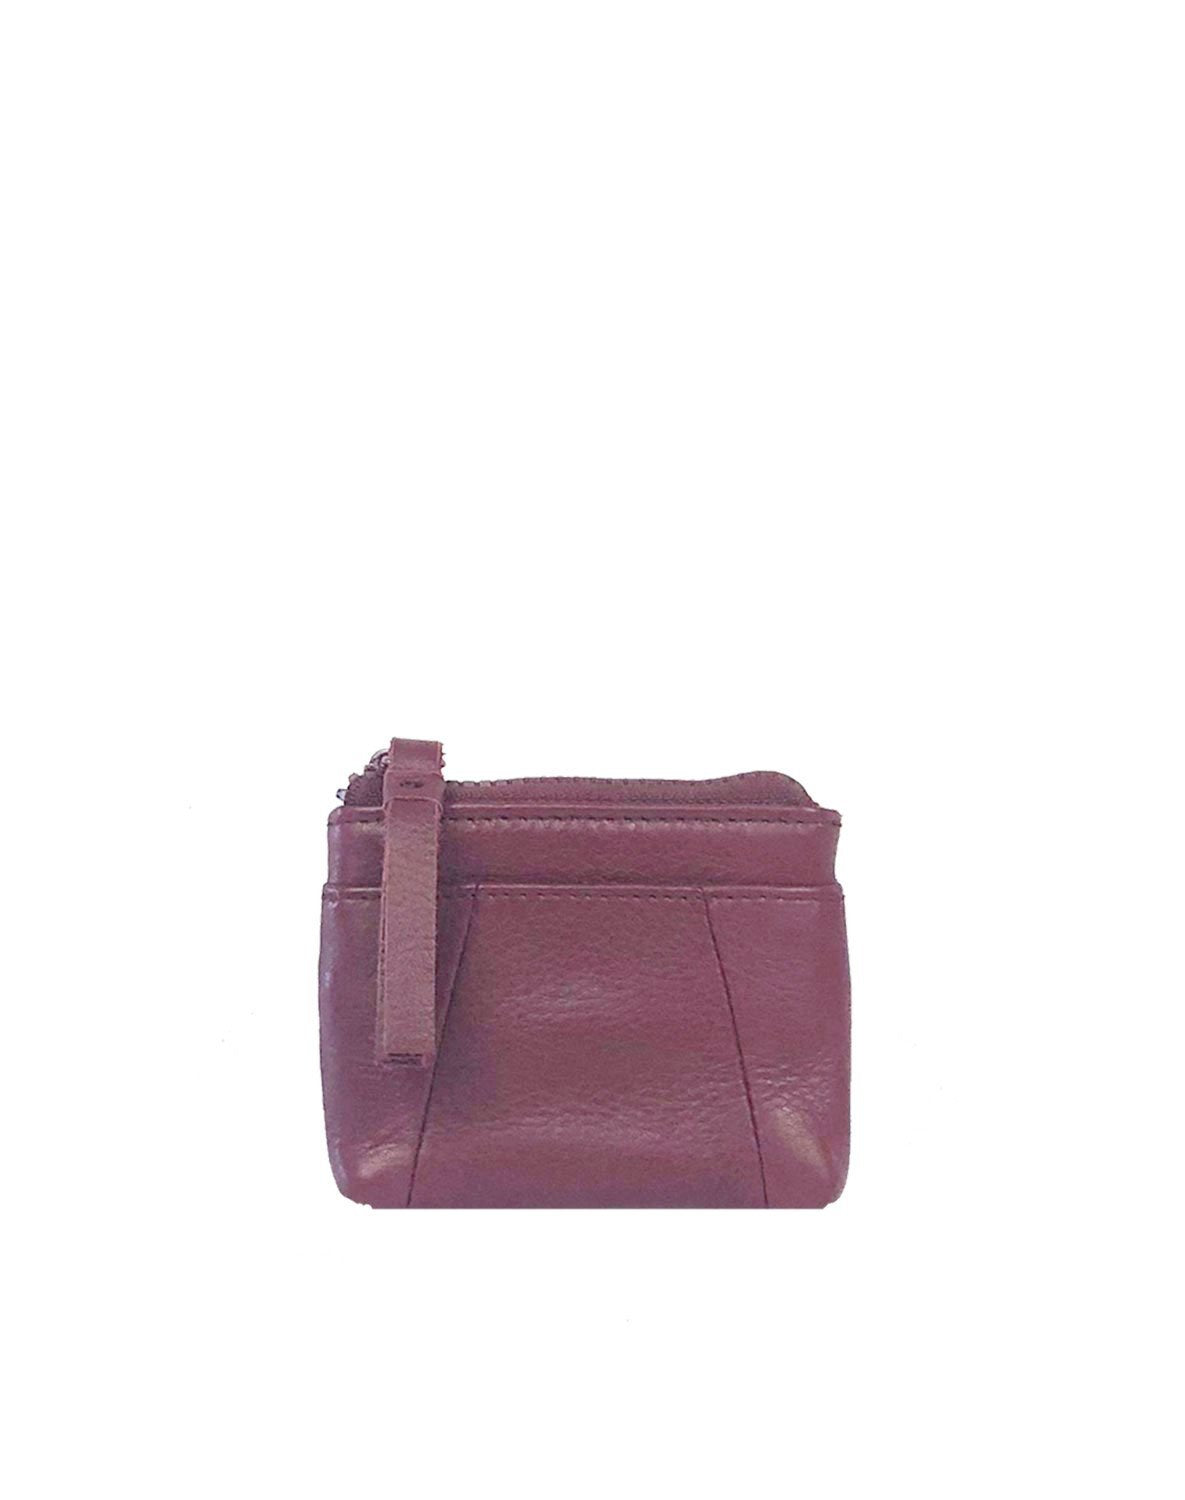 Paige card case in Wine